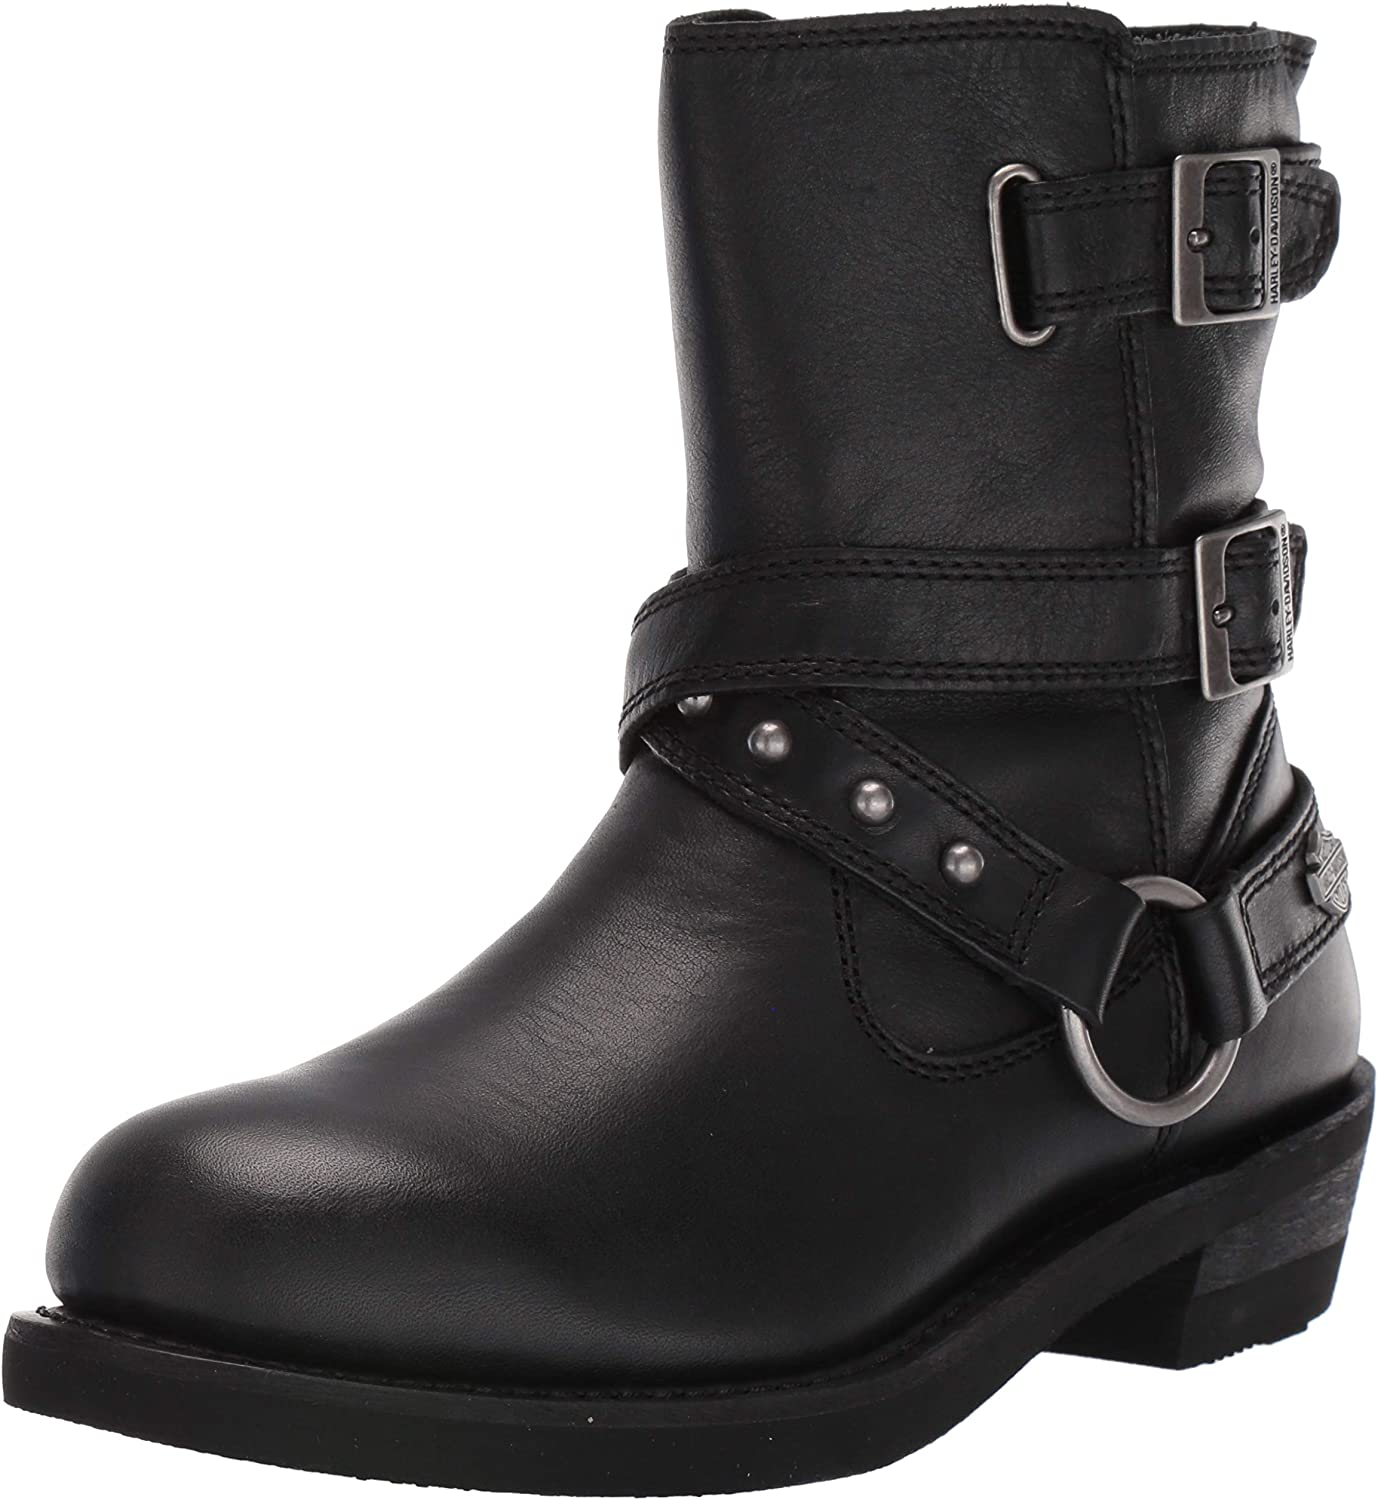 HARLEY-DAVIDSON 2021 Complete Free Shipping FOOTWEAR Women's Janice Motorcycle Boot